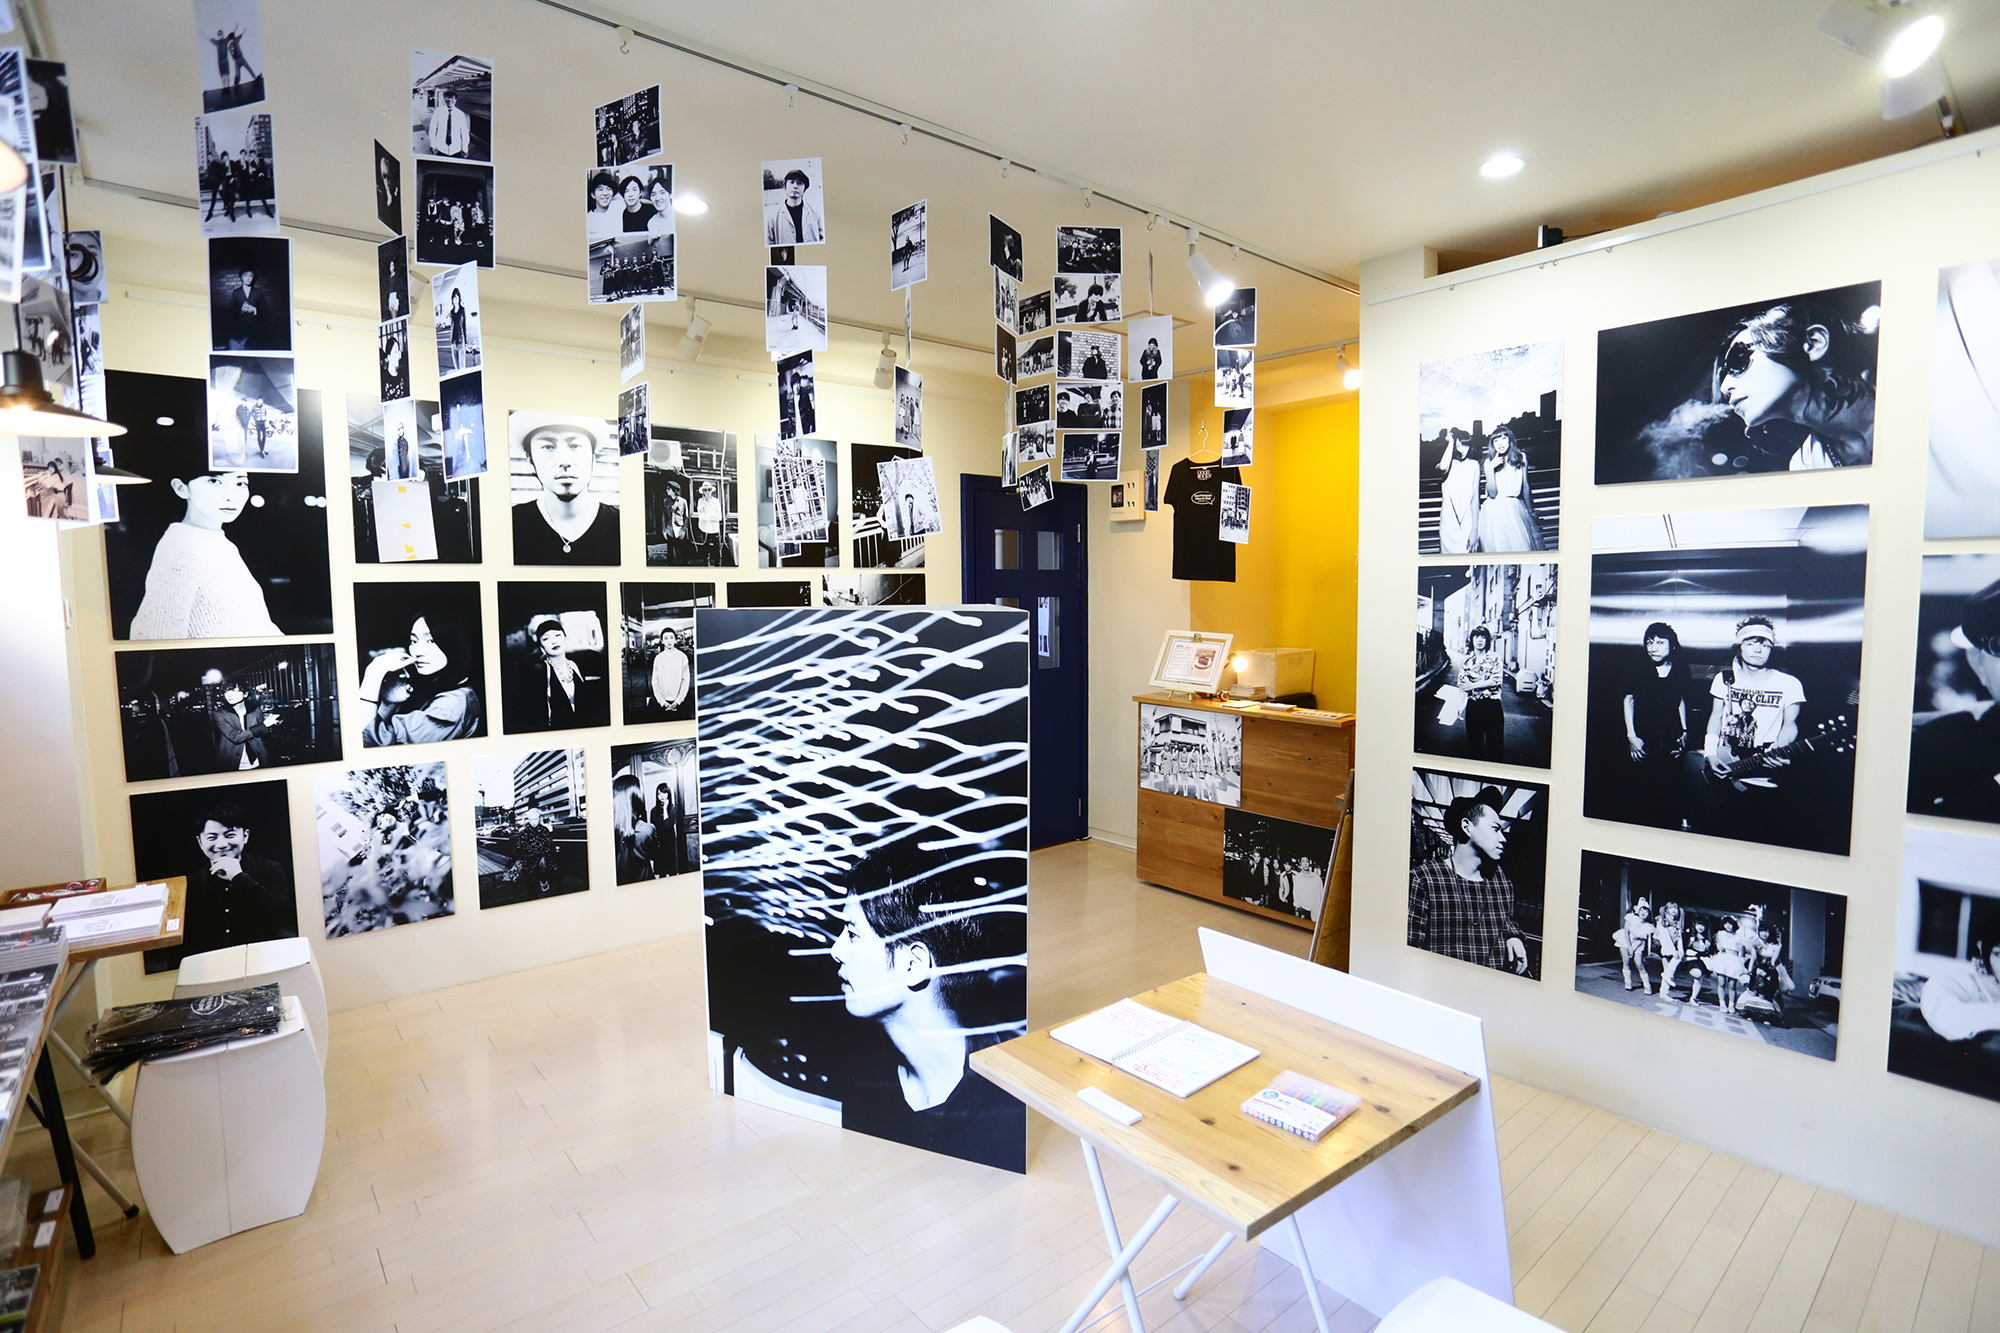 【名古屋】GOOD ROCKS! 10th Anniversary PHOTO EXHIBITION PHOTOGRAPHED BY HIROSUKE FUKUMOTO